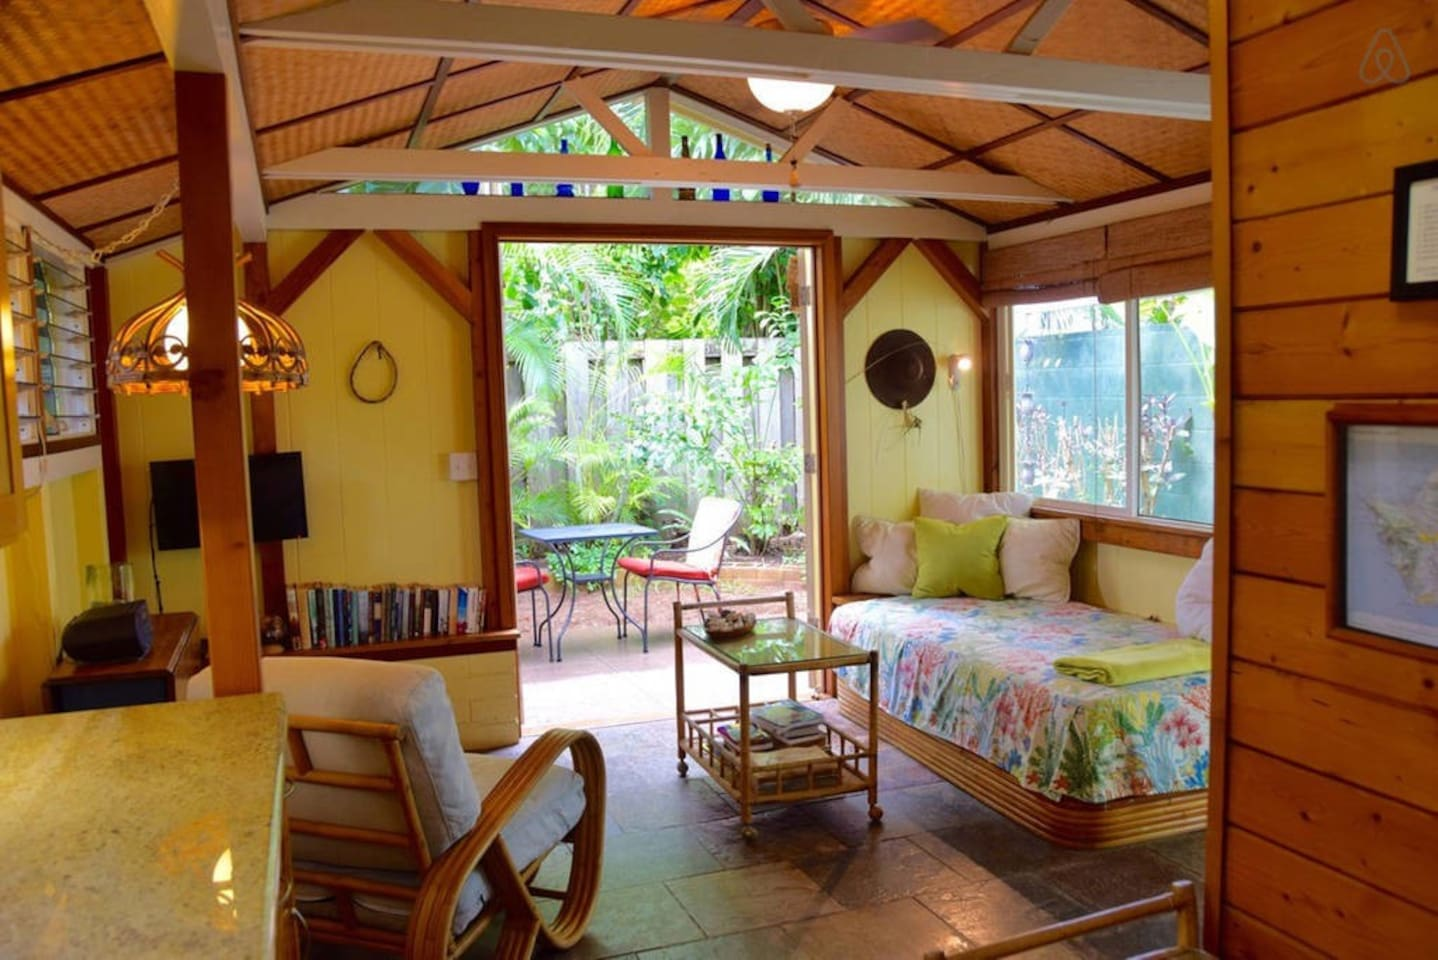 Cute Beachwalk Bungalow - Cottages for Rent in Kailua, Hi, United States